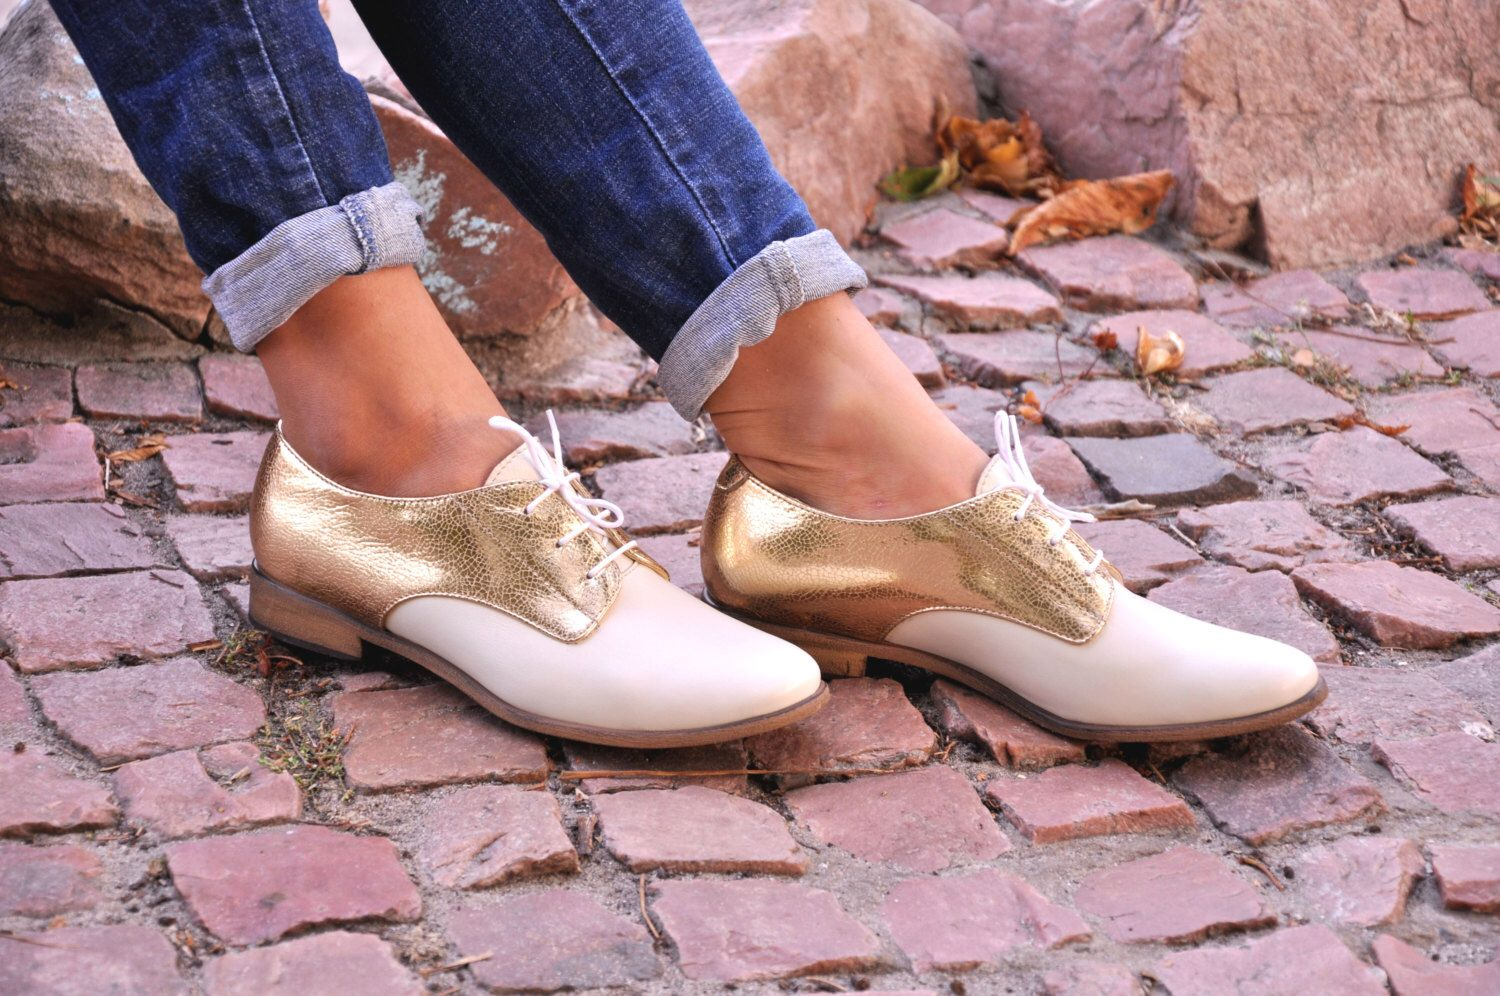 Abbey - Womens Derbys, Chic Shoes, Leather Shoes, wedding shoes, Gold Oxfords, Custom Shoe, FREE customization!!!. by JuliaBoShoes on Etsy https://www.etsy.com/listing/251056912/abbey-womens-derbys-chic-shoes-leather